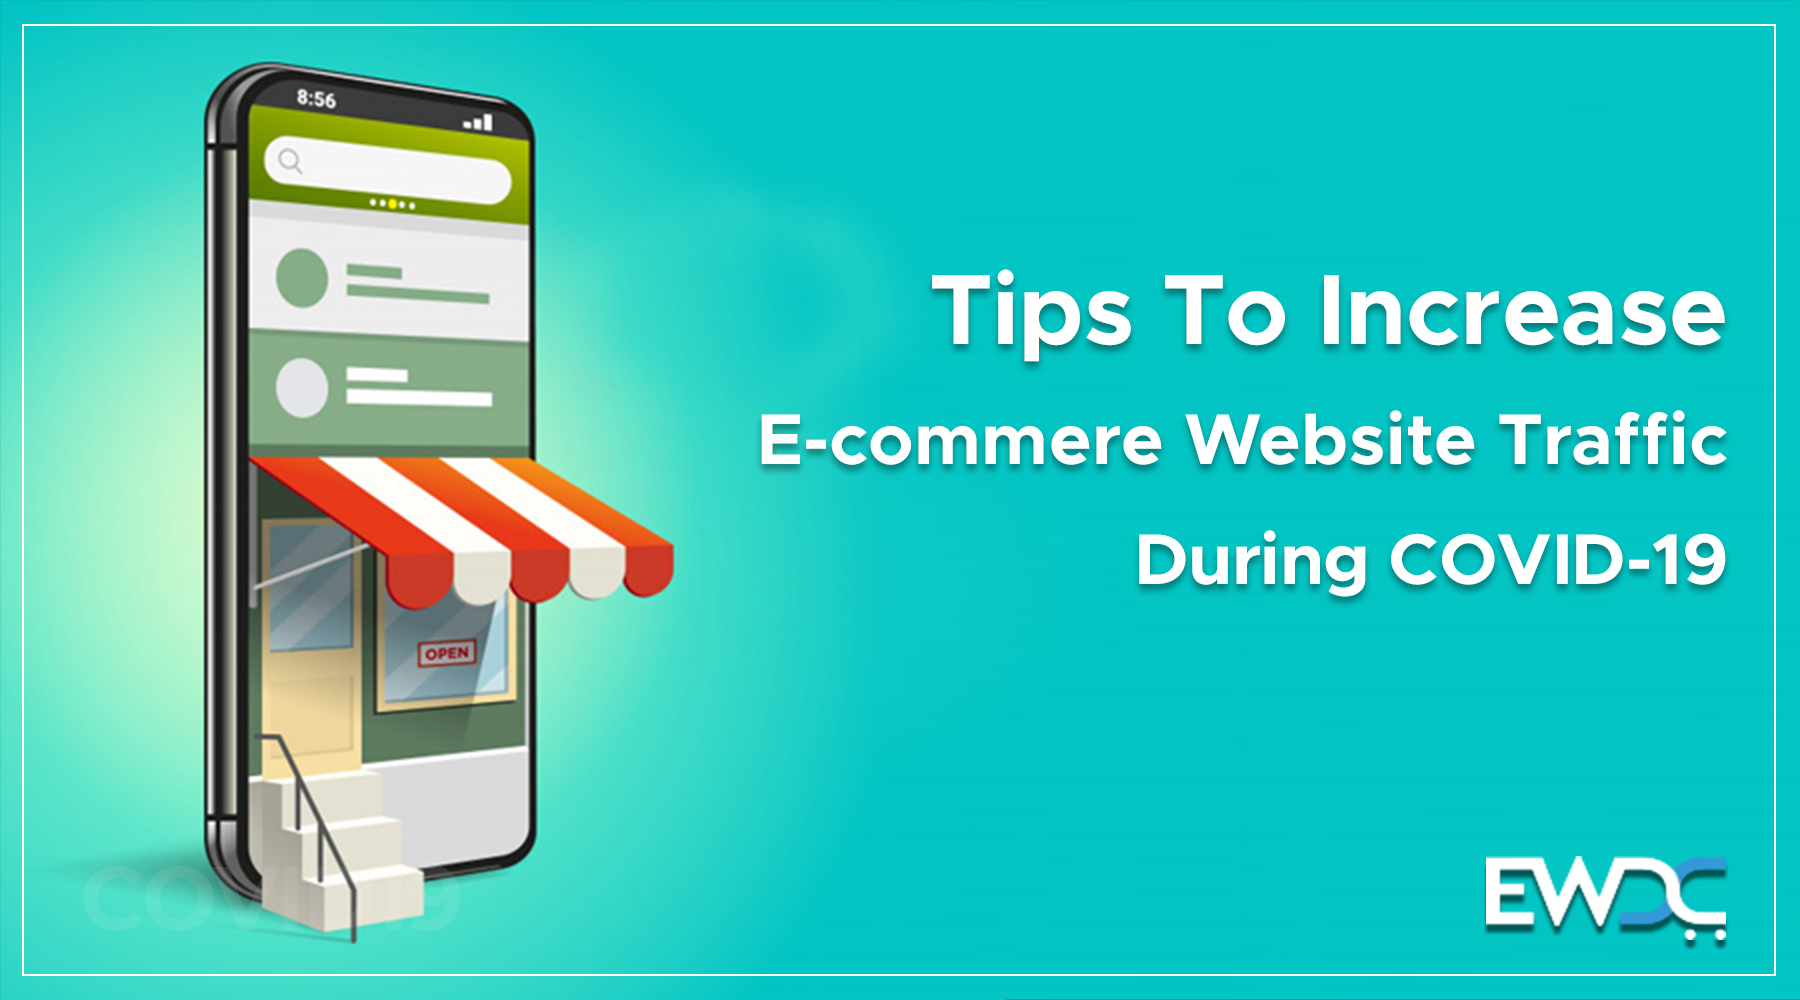 Tips to increase ecommerce website traffic